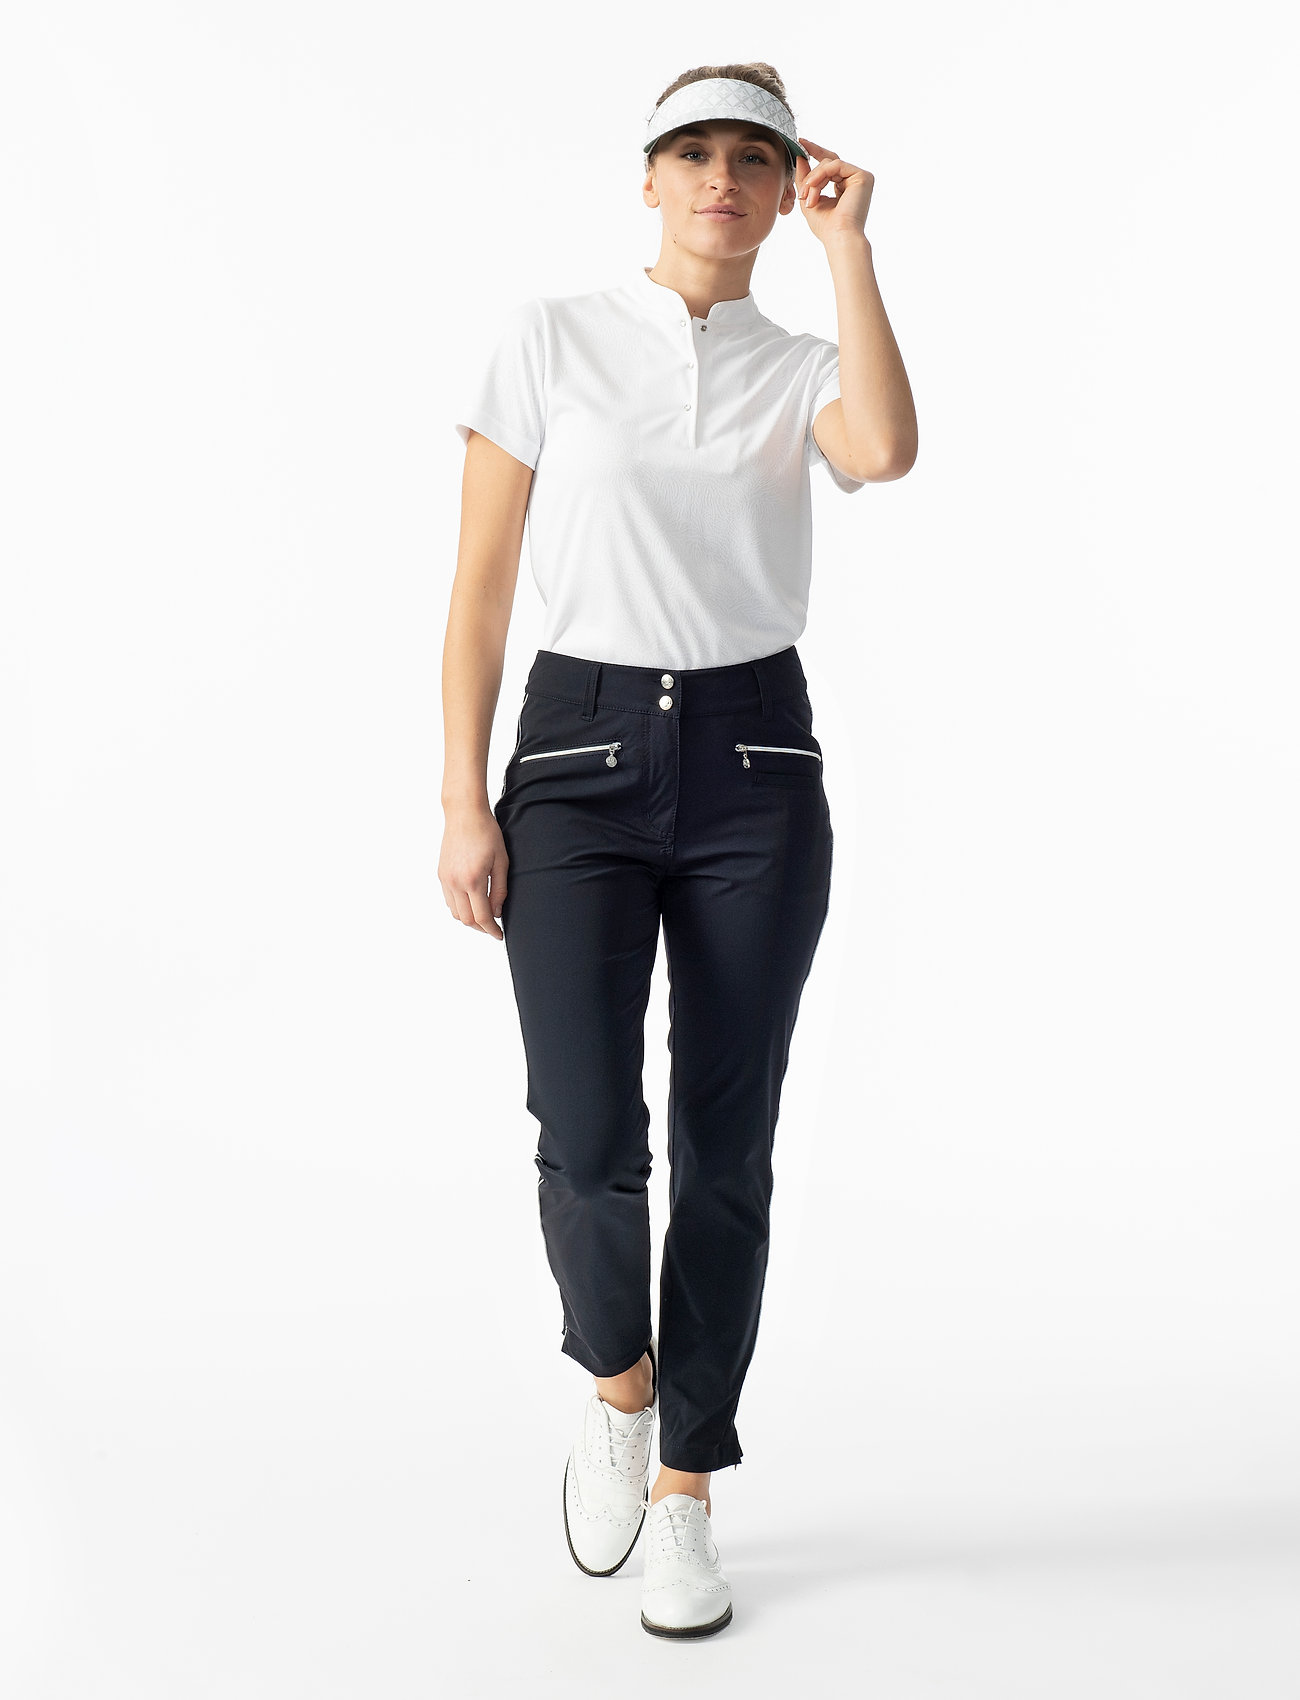 Daily Sports - GLAM HIGH WATER - golfbroeken - navy - 0